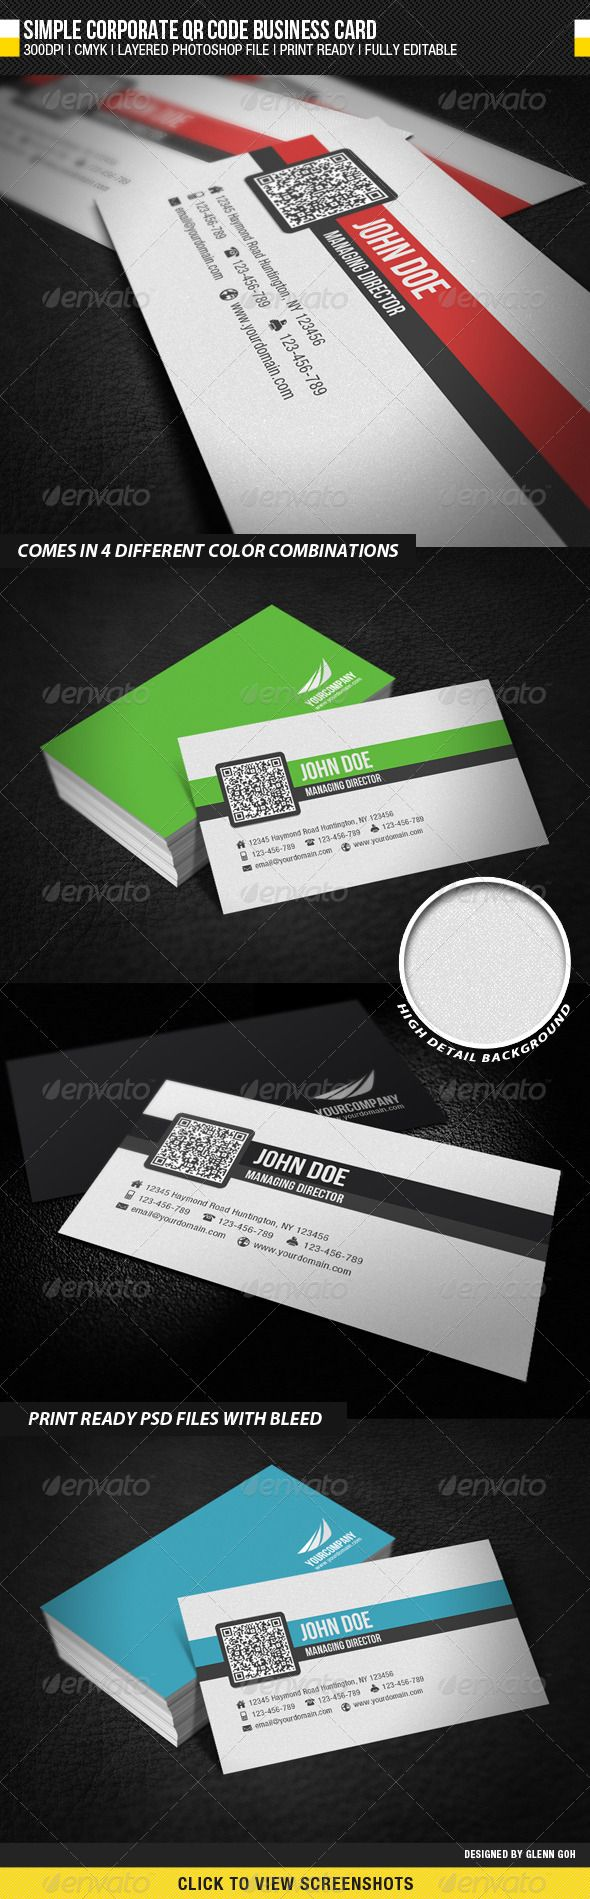 Simple Corporate QR Code Business Card - Business Card Template PSD. Download here: http://graphicriver.net/item/simple-corporate-qr-code-business-card/2200821?s_rank=262&ref=yinkira